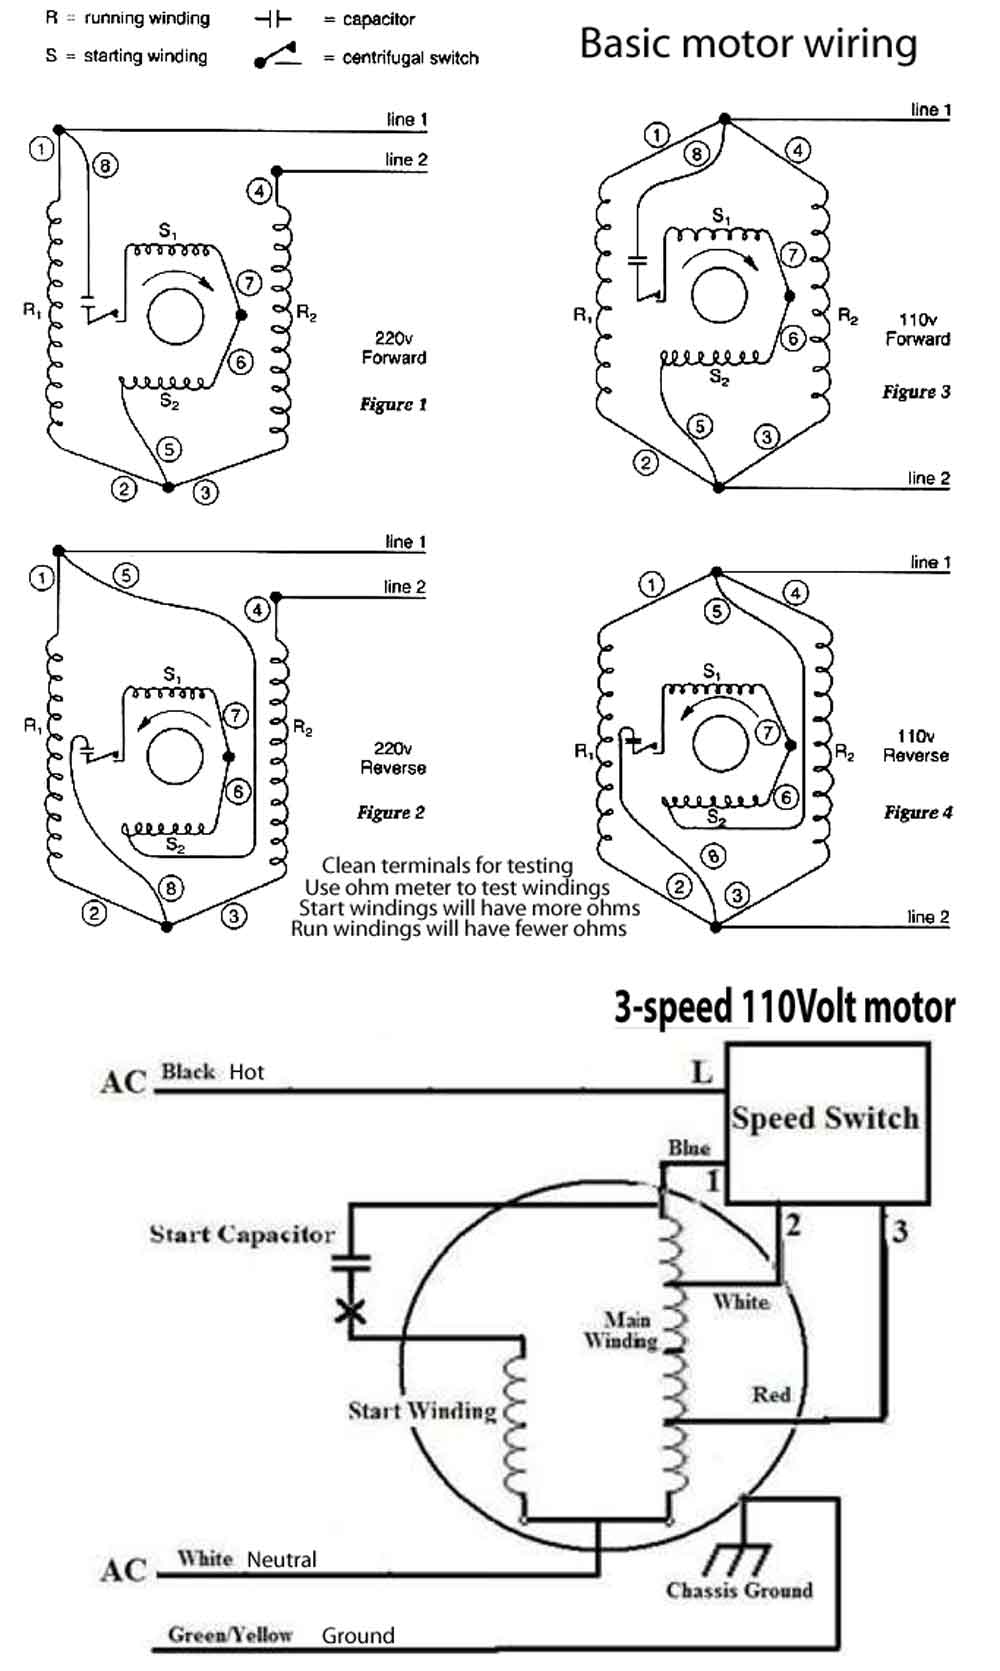 Motor wiring 500 how to wire 3 speed fan switch Fan Wire Connection at n-0.co